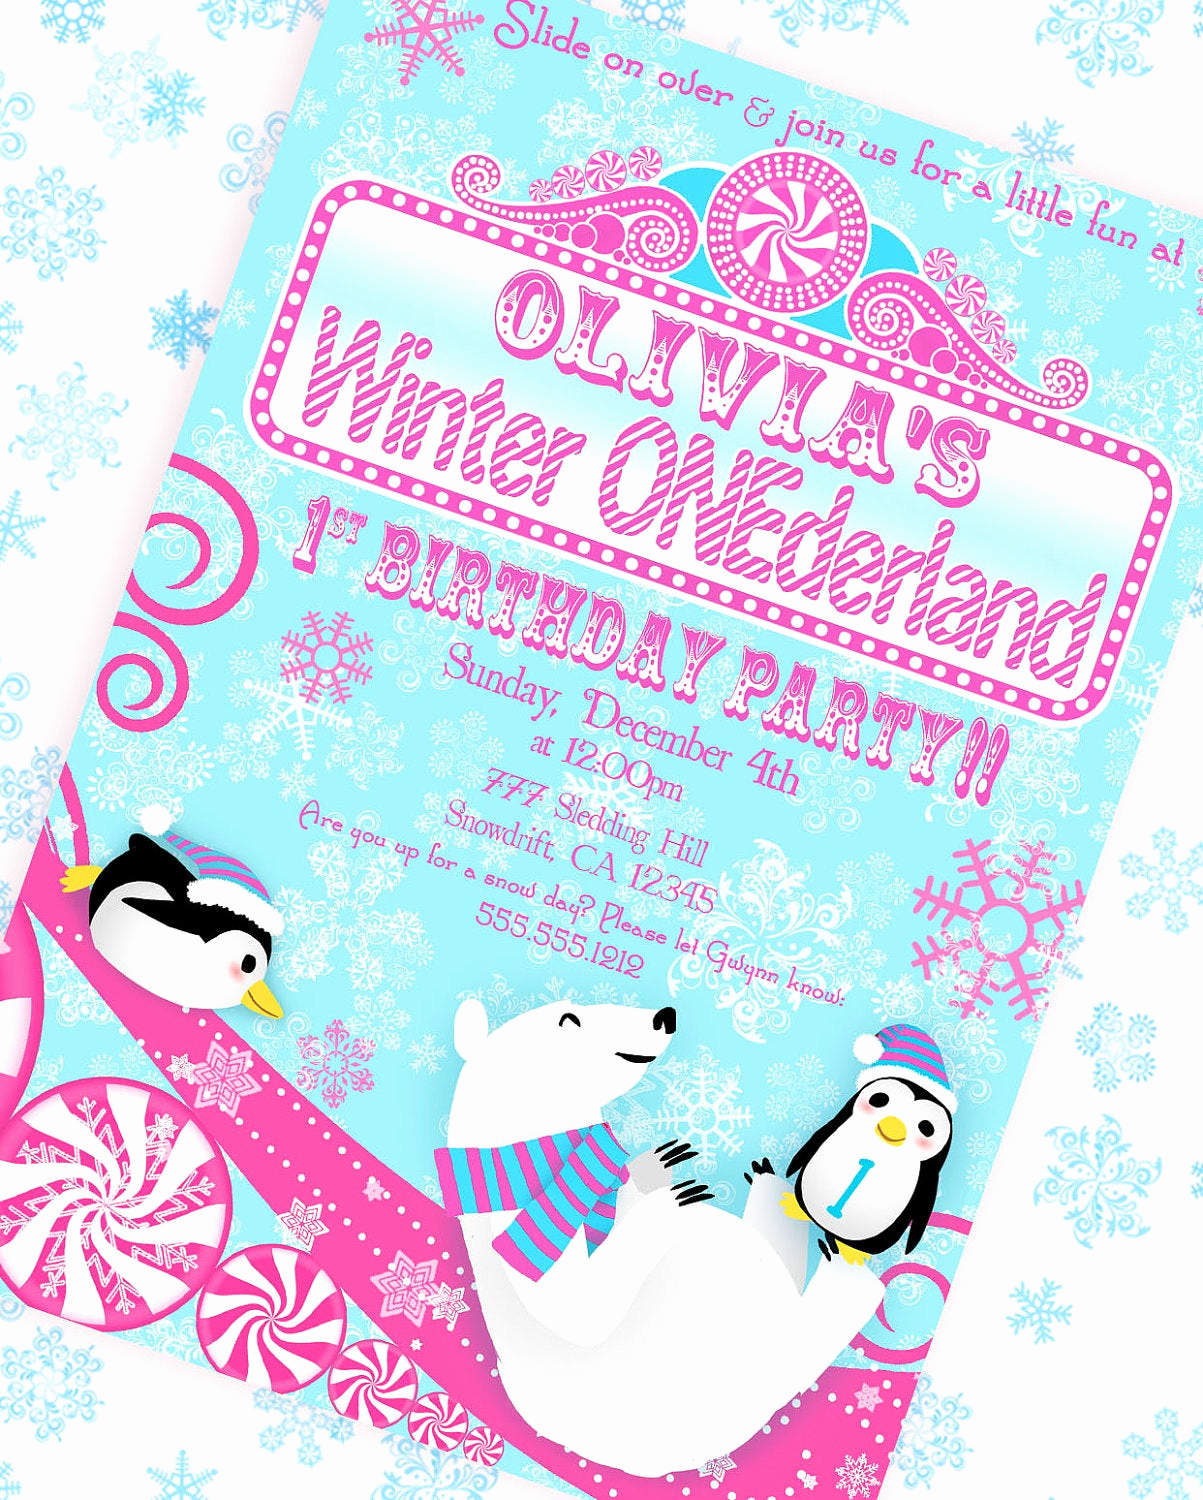 Winter One Derland Invitation Inspirational Winter Onederland Wonderland Invitation Pink and Aqua